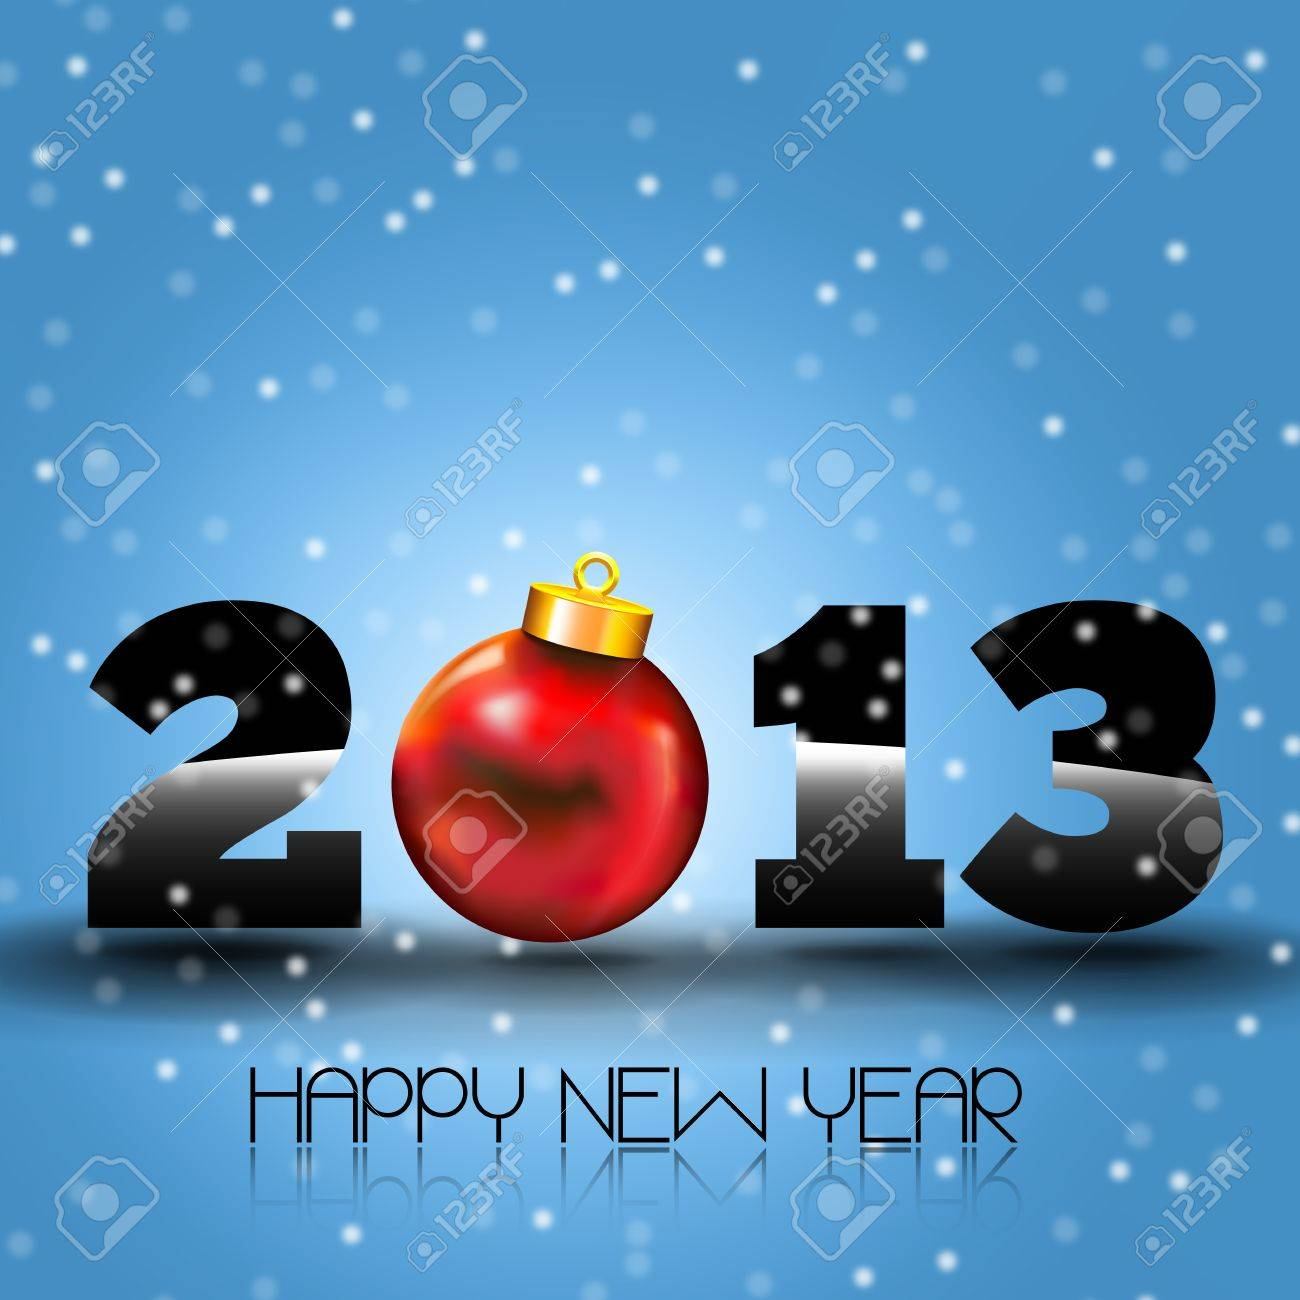 Happy New Year 2013 with Red Christmas Ball  Happy new year s eve with snow and red Xmas Ball Stock Vector - 15974148